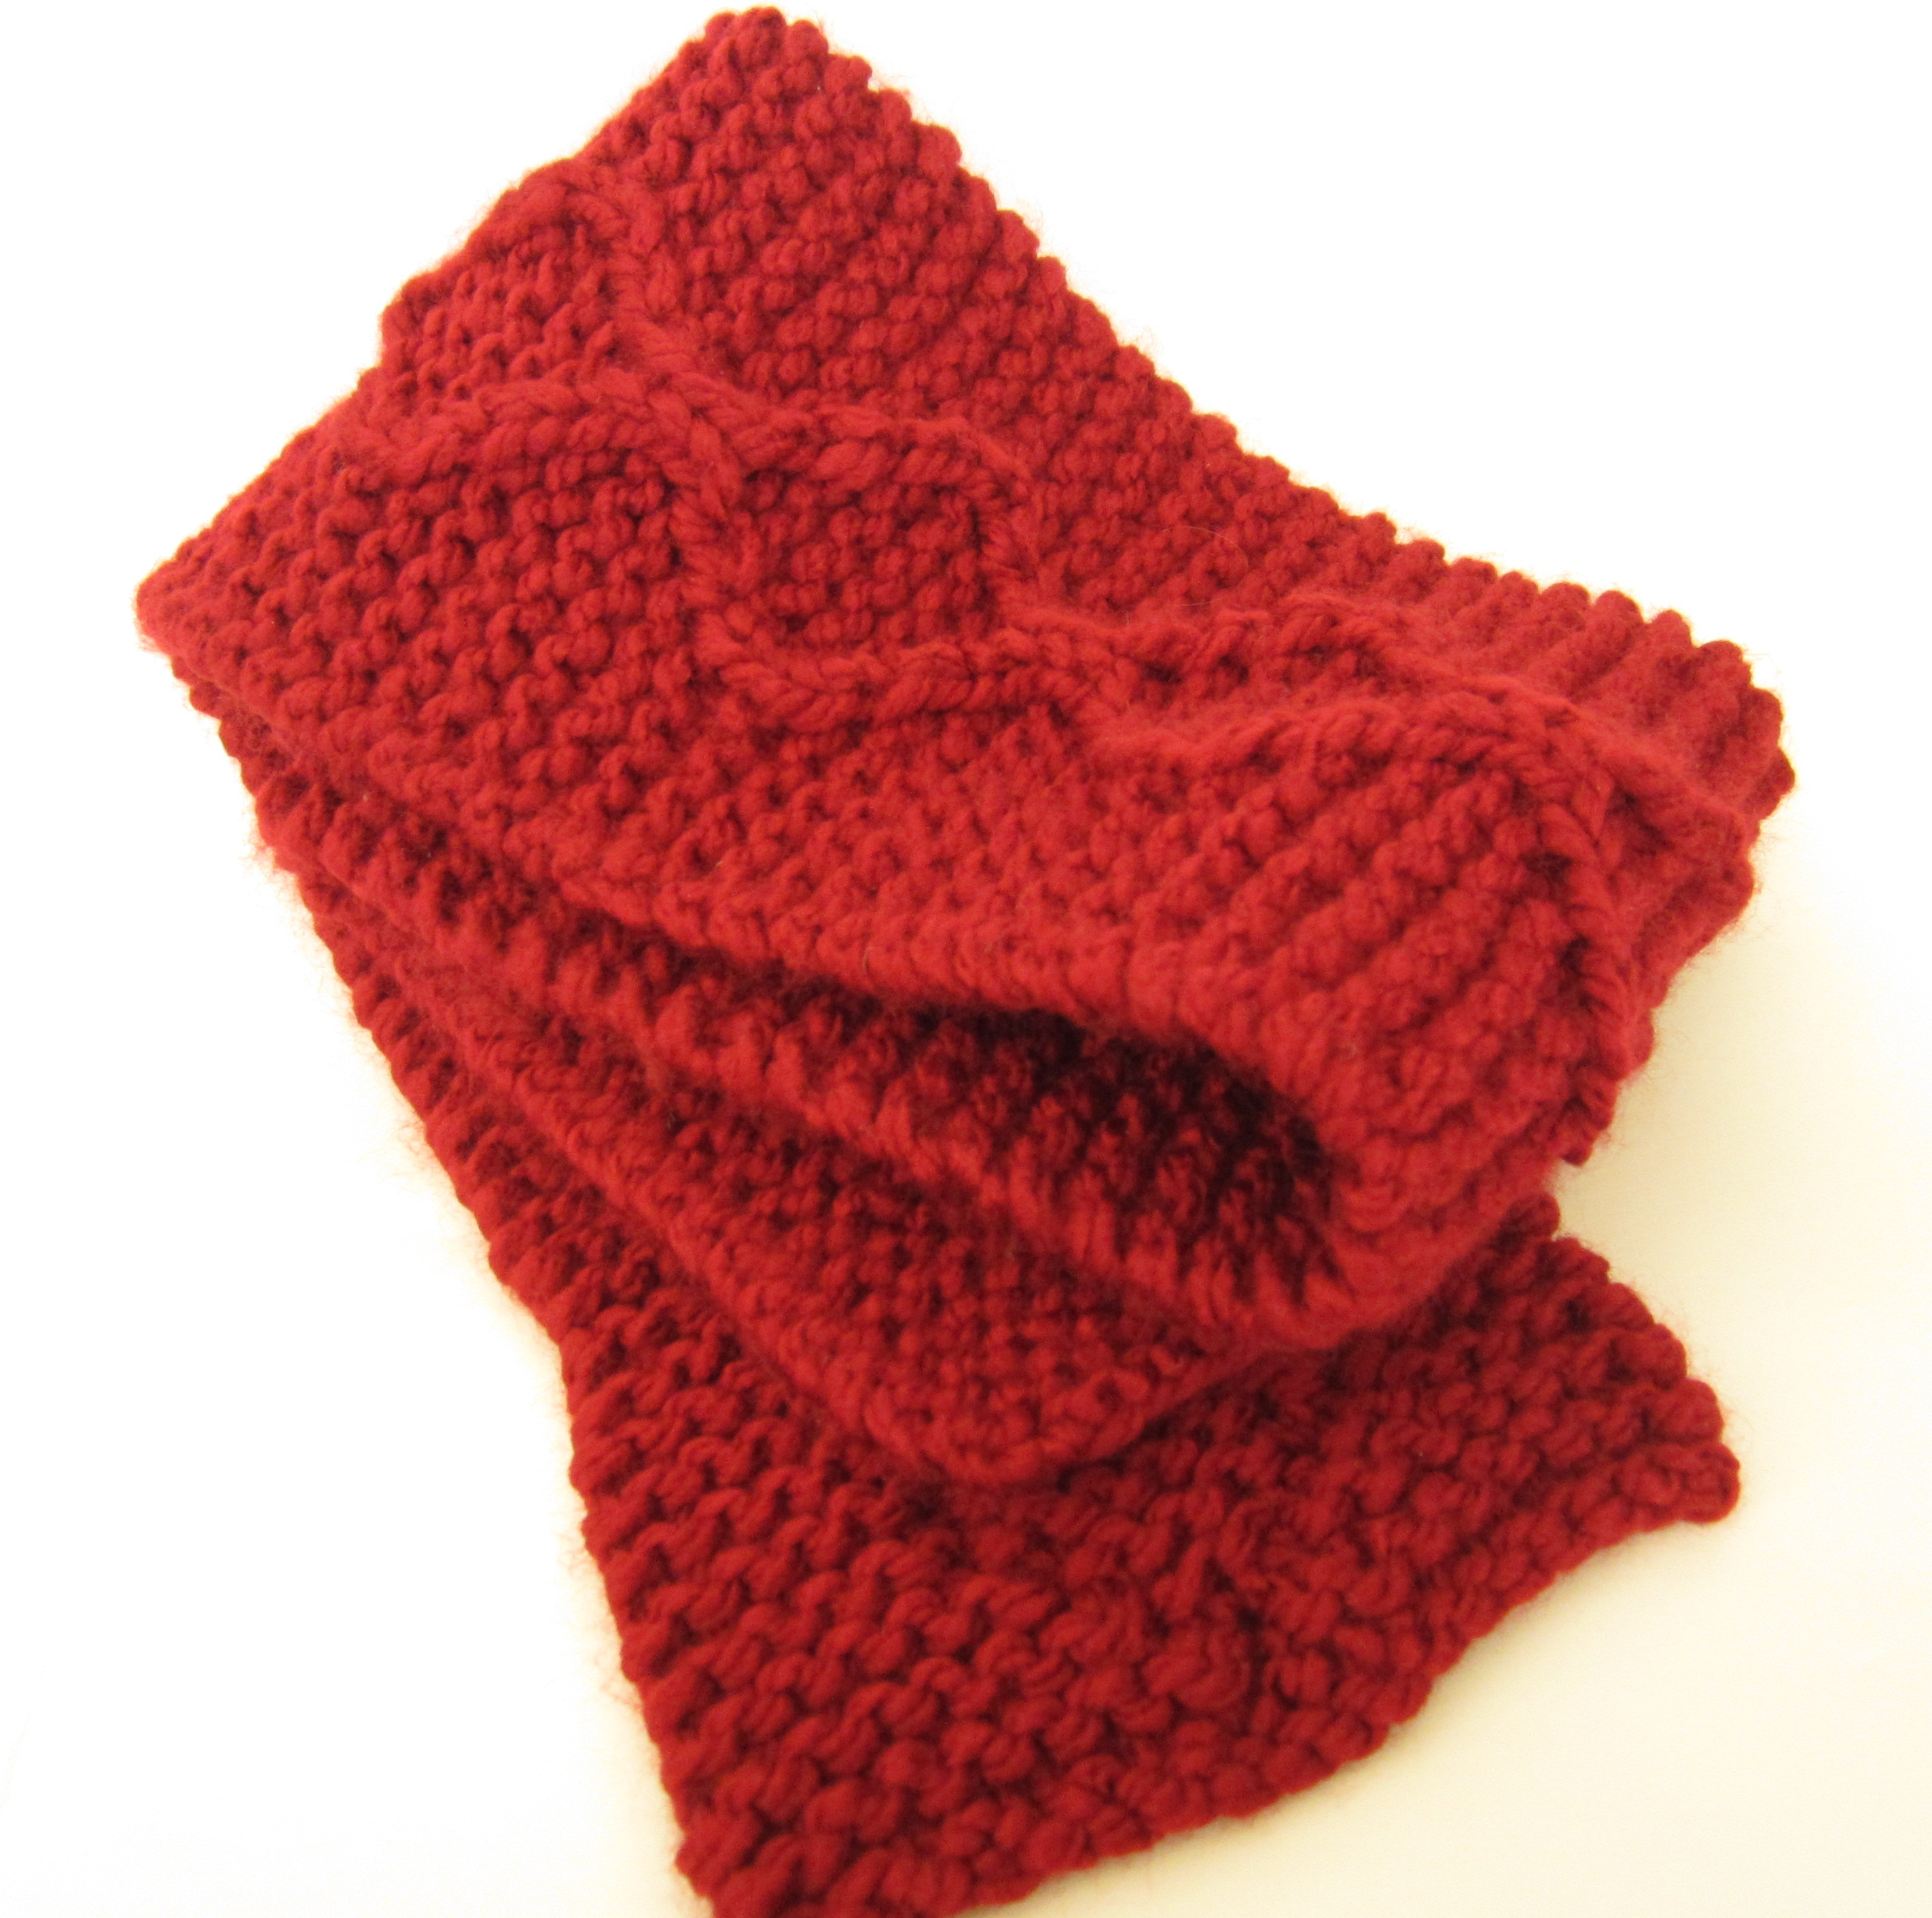 Pattern Knitting : Quick Free Knitting Patterns